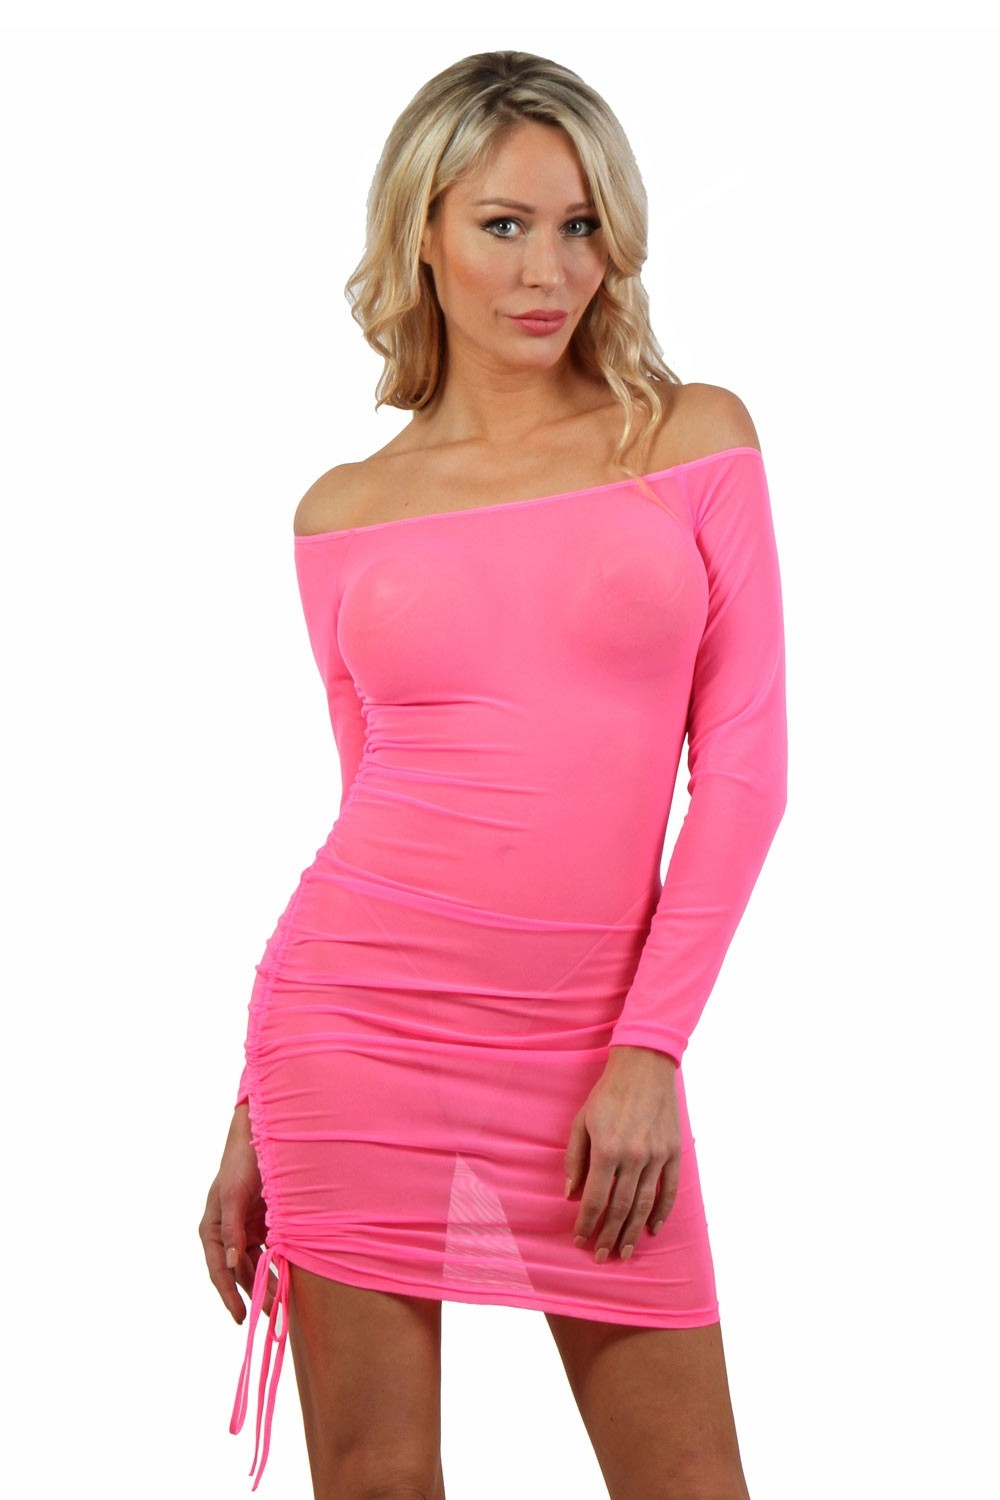 Robe rose fluo micro résille transparente - Spazm